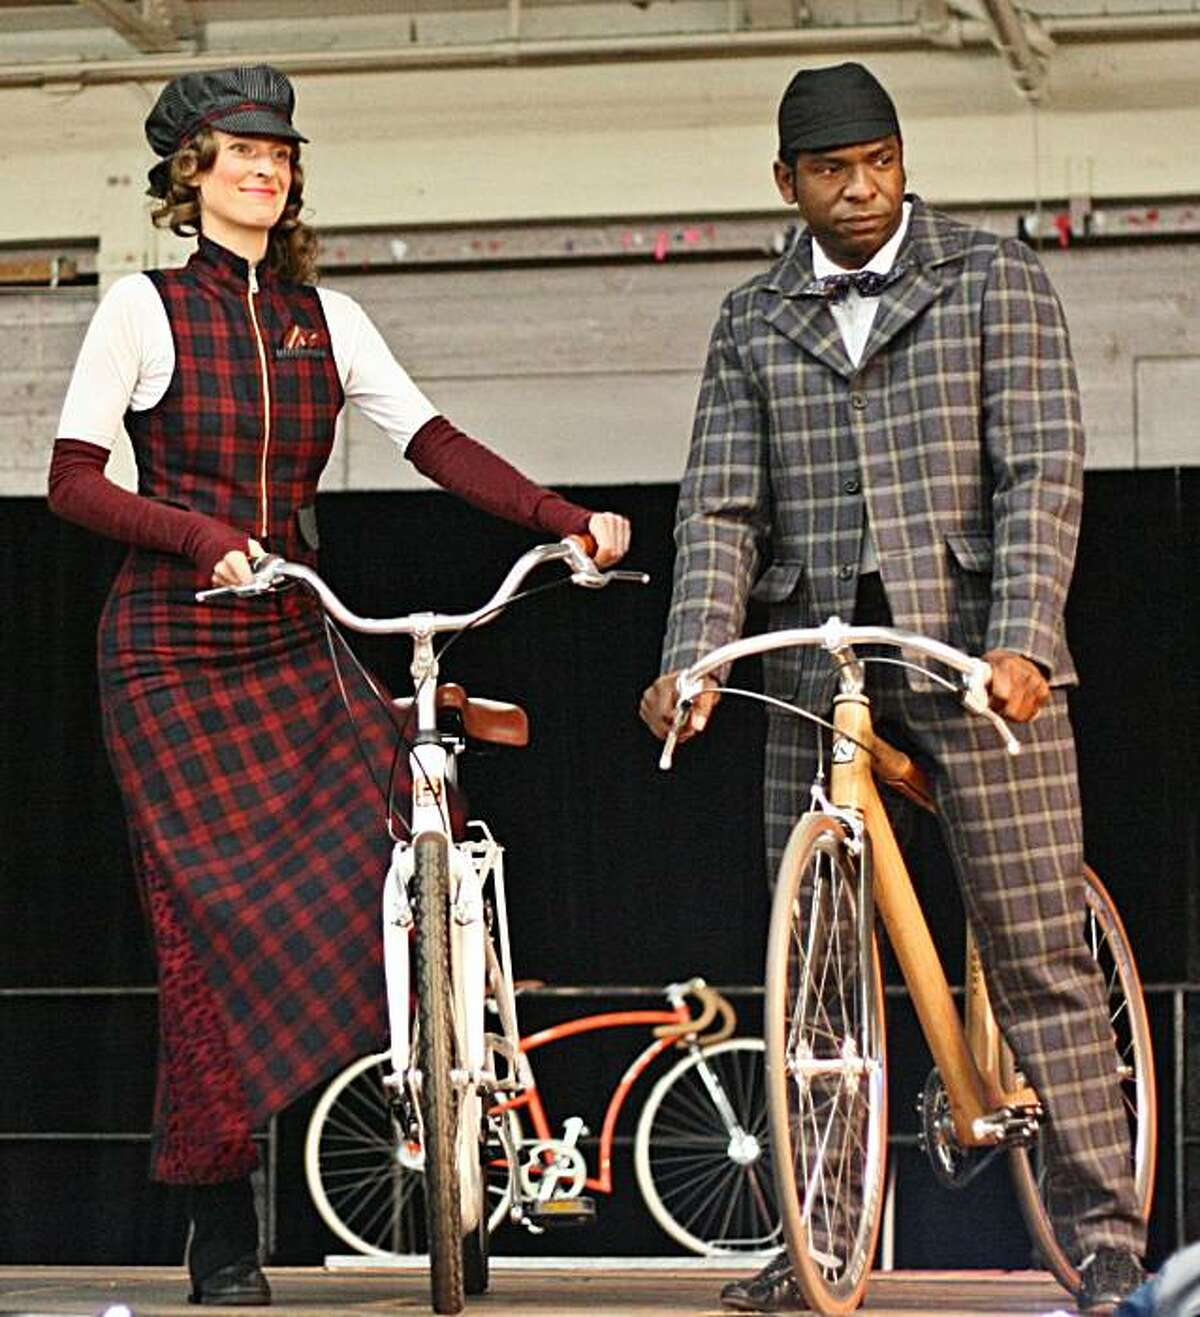 Bridget Frederick, a designer and the manager of recycled products at B. Spoke Tailor, and Eddie Johnson, model at the SF Bike Expo/Momentum Magazine Fashion show in 2009 at the Cow Palace. The suit is a Dashing Tweeds Lumatwill. The skirt, vest and hat are English tartans. The outfit was styled by Gwen Lutz.